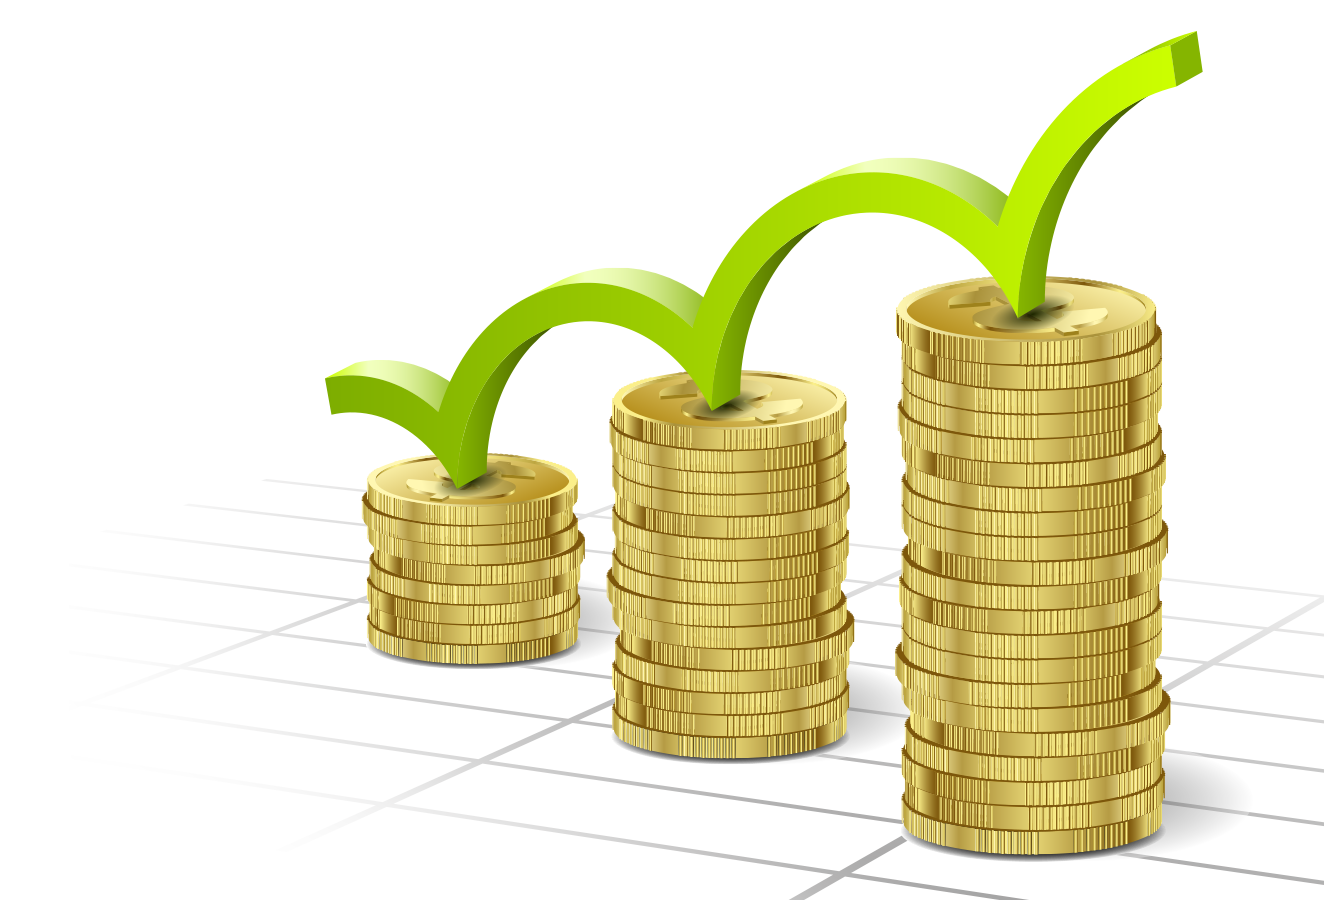 Finance clipart india money. Business loan investment transprent